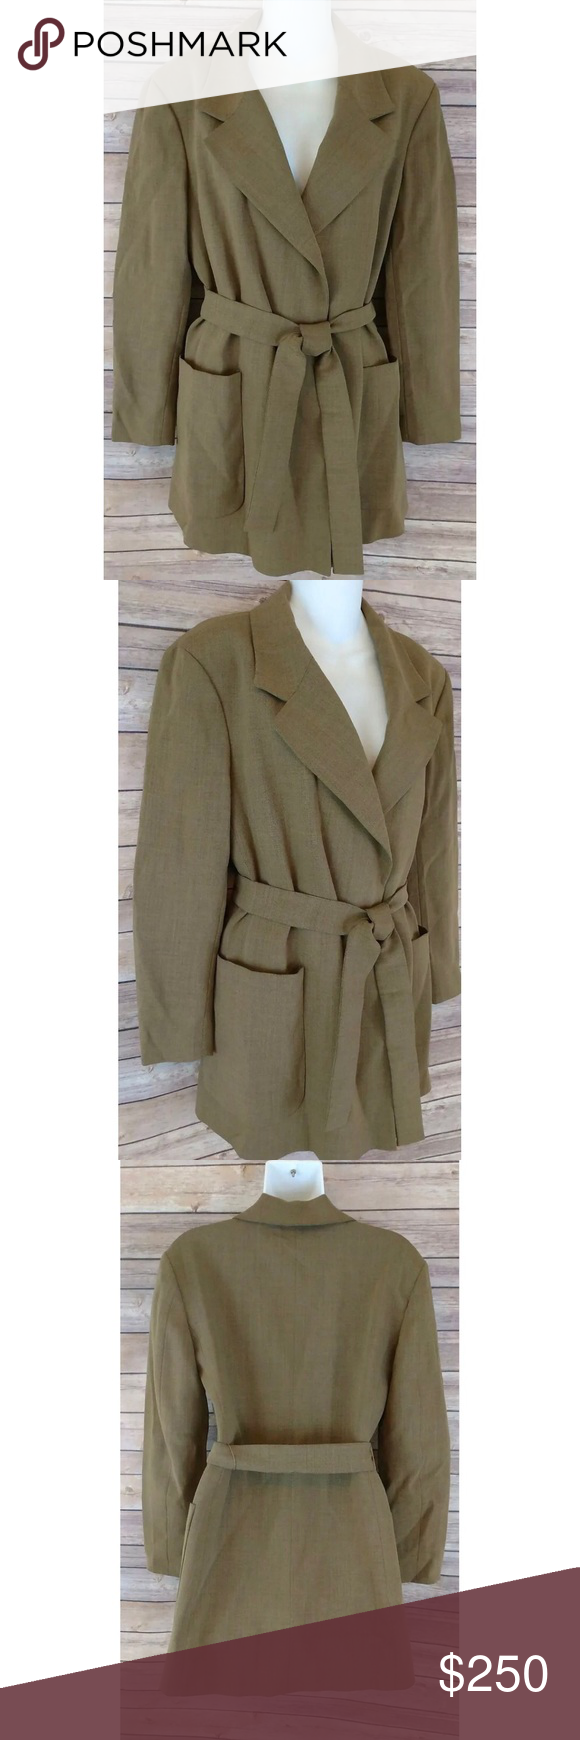 "Fendi blazer jacket Gorgeous Fendi 365 blazer jacket fully lined and has a tied waist. Made in Italy and is new with tags!  Size: 8 US  Bust: 17"" from underarm to underarm  Length: 32"" from shoulder to hem  Arm Length: (Inseam: 16.5"") (Outer: 22"") Fendi Jackets & Coats Blazers"